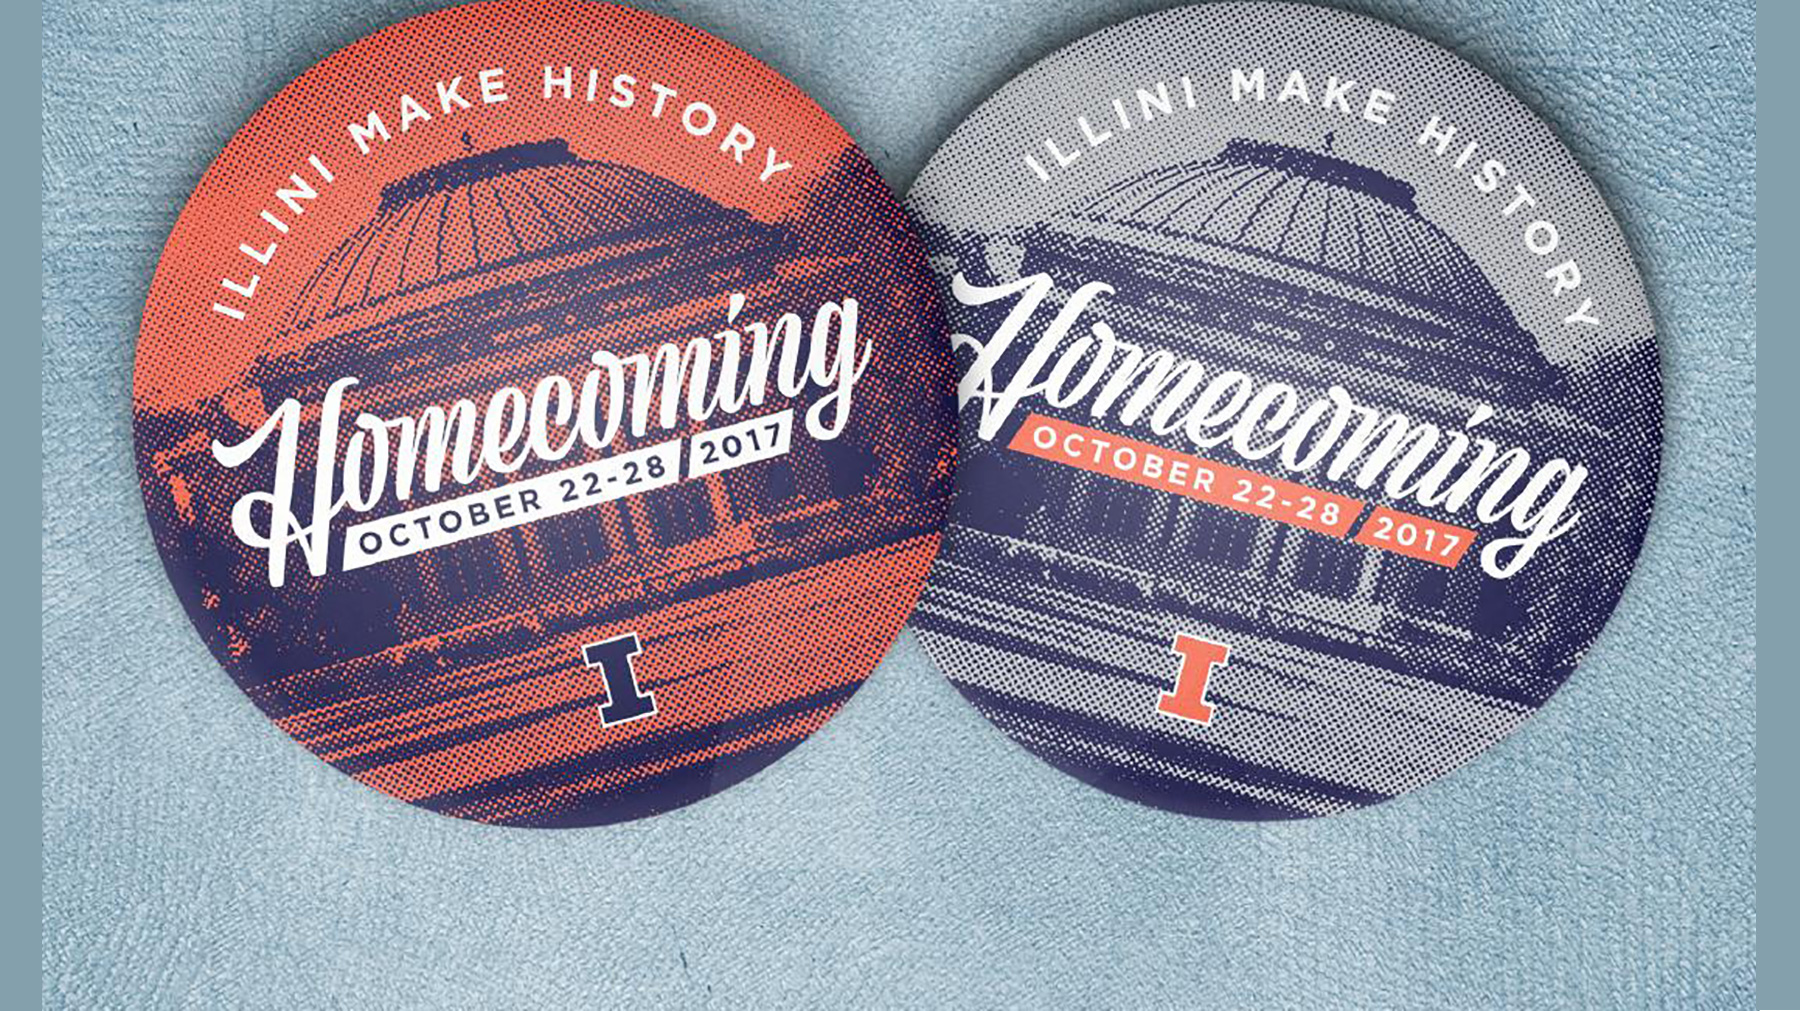 graphic provided by the University of Illinois Alumni Association